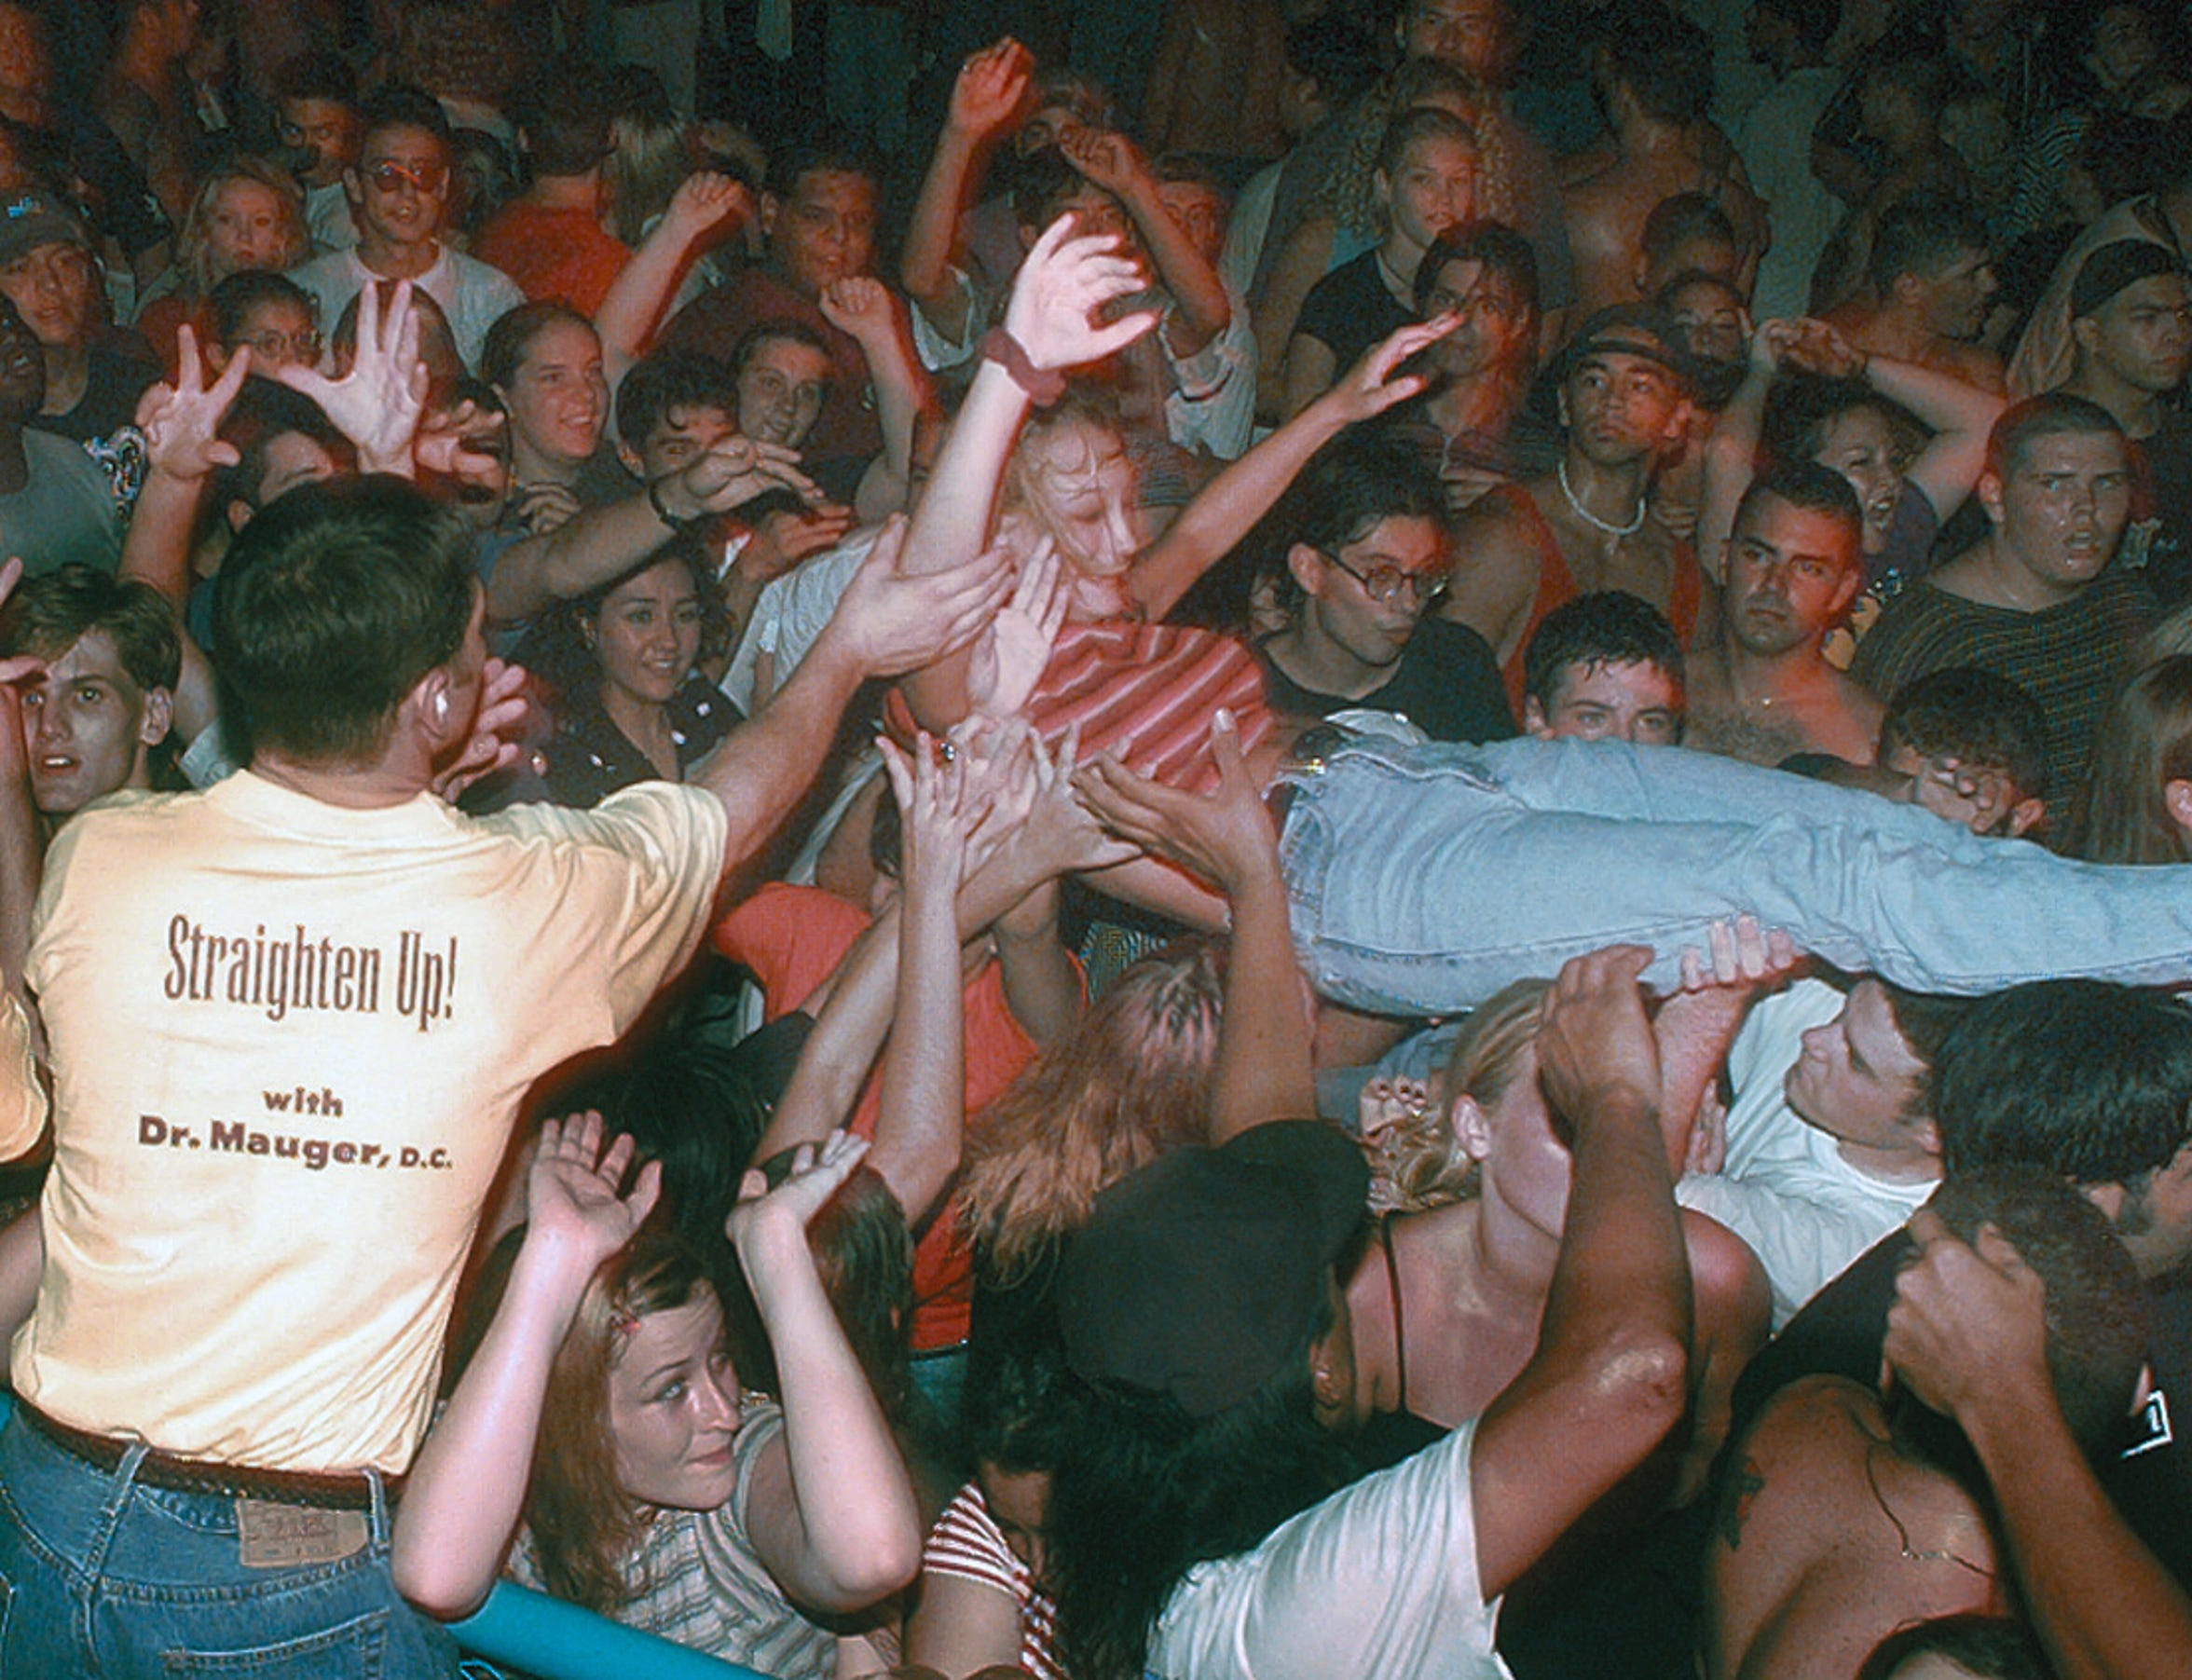 A concert goer is carried over the crowd toward a security guard at Texas Sky Festival Park in Corpus Christi during the Toadies concert on July 6, 1996.Photo by  7-6-96